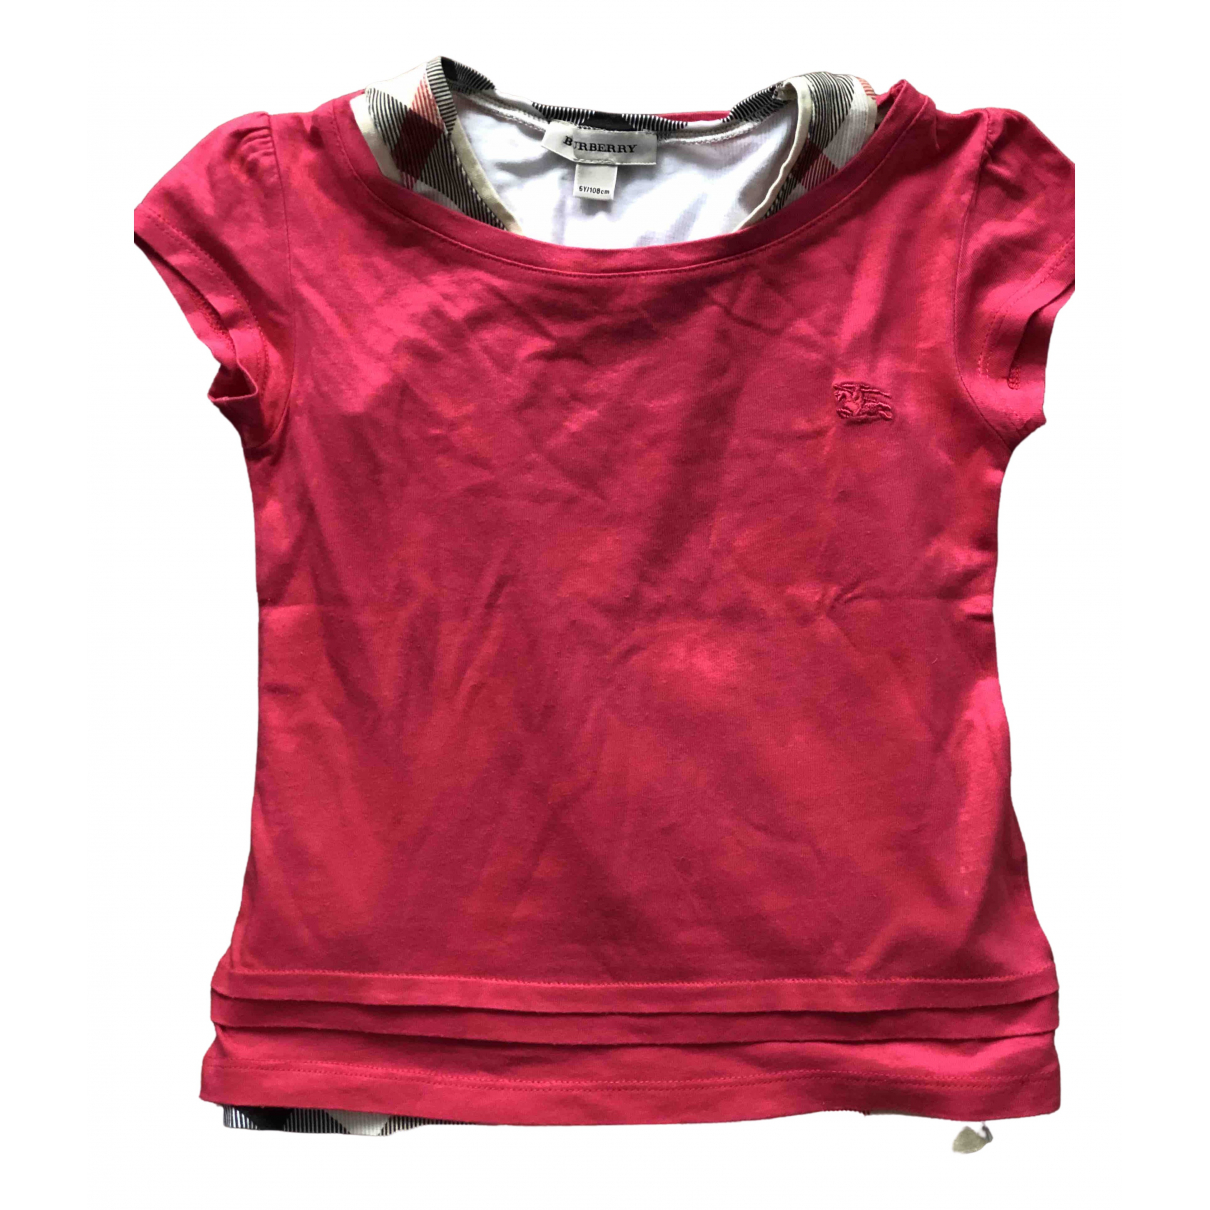 Burberry \N Beige Cotton  top for Kids 4 years - until 40 inches UK